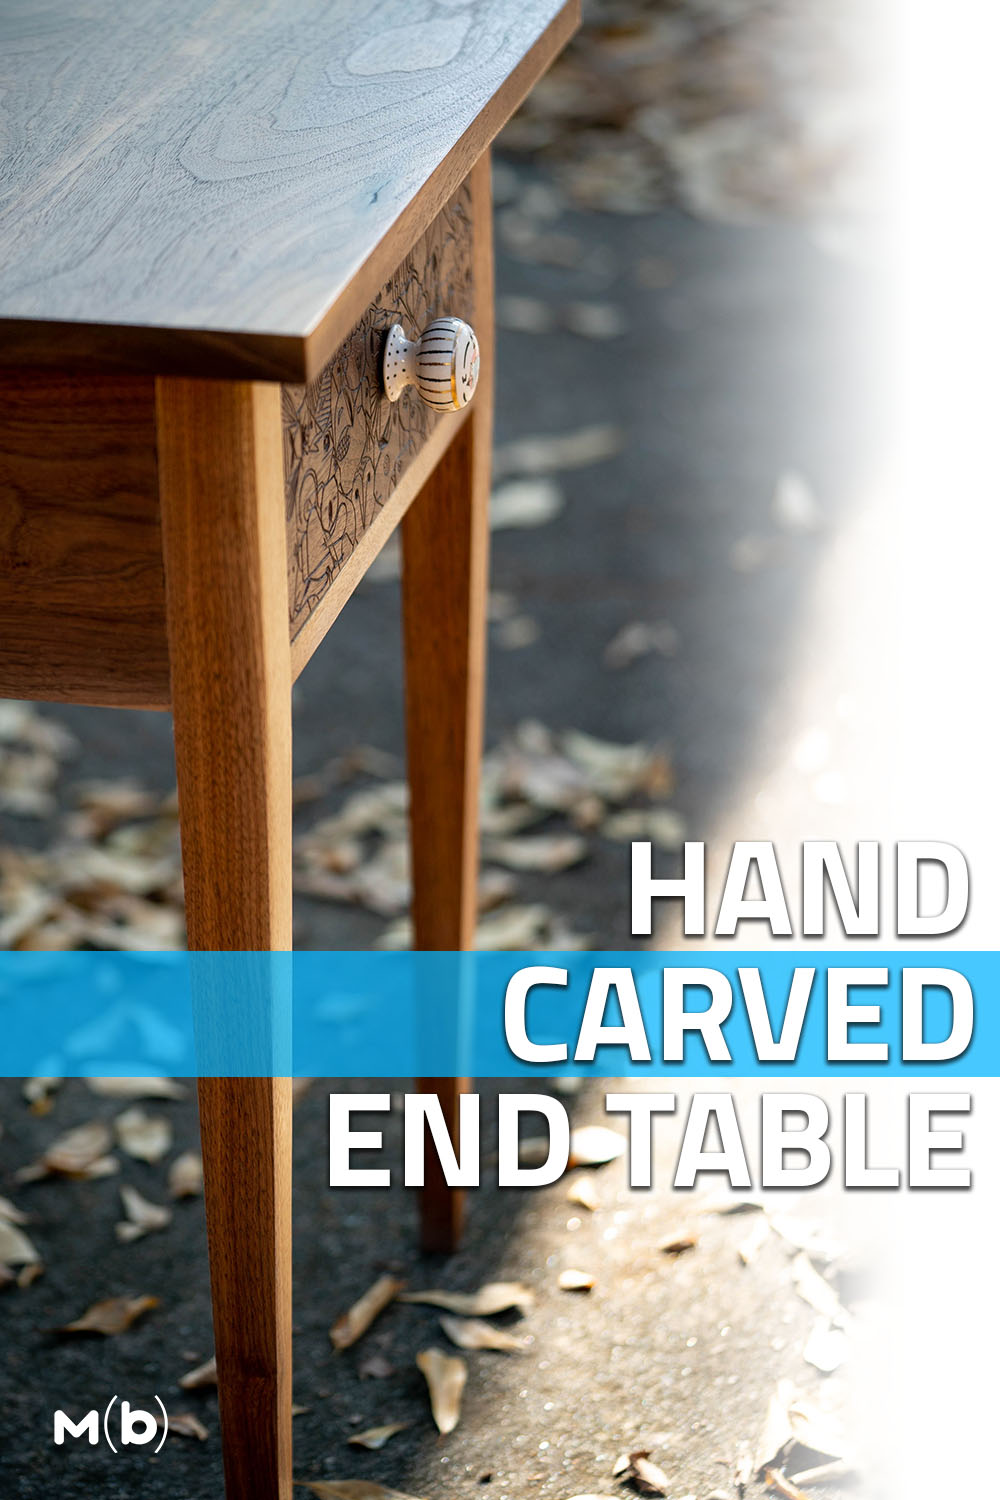 How to make a custom walnut end table with hand carved designs #furniture #handcarved